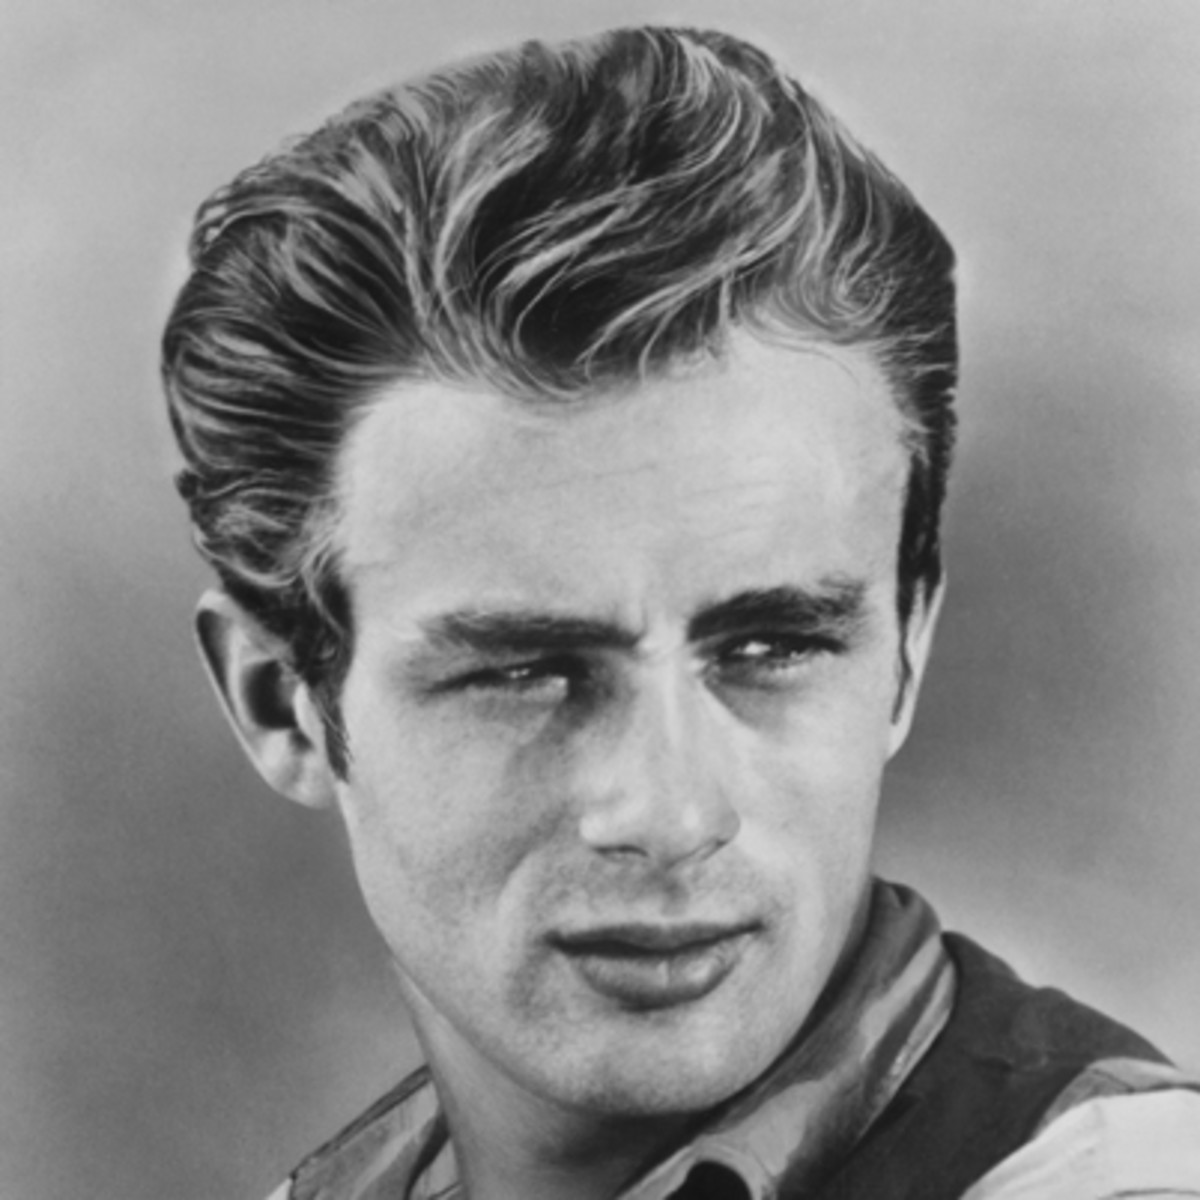 James Dean Television Actor Film Actor Actor Biography